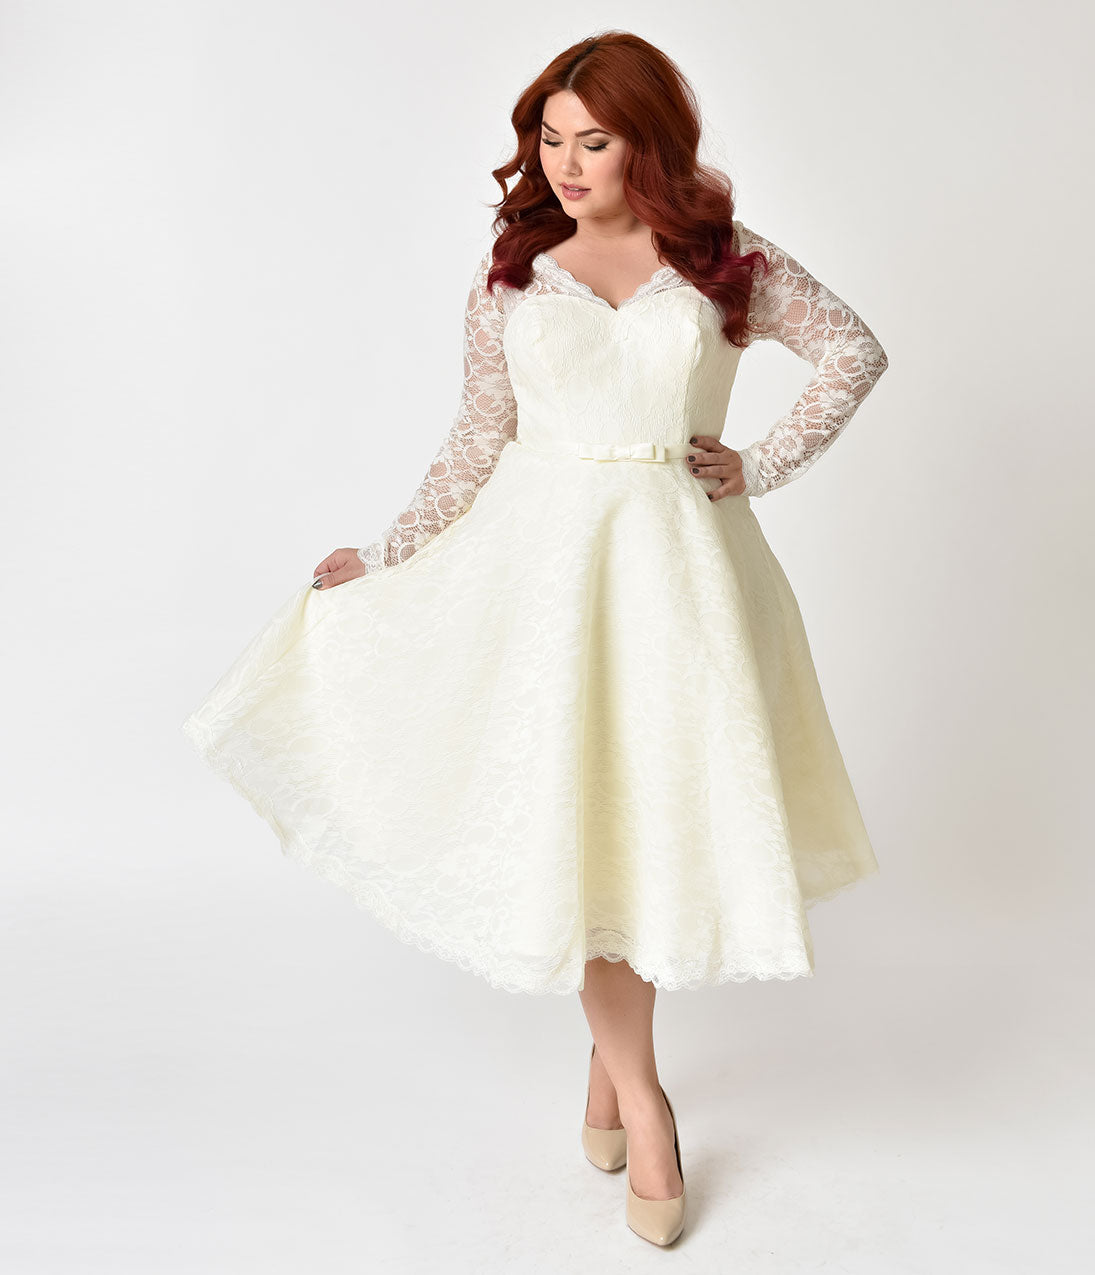 60s Wedding Dress | 1960s Style Wedding Dresses Unique Vintage Plus Size 1950s Style Ivory Lace Long Sleeve Martinique Swing Dress $228.00 AT vintagedancer.com